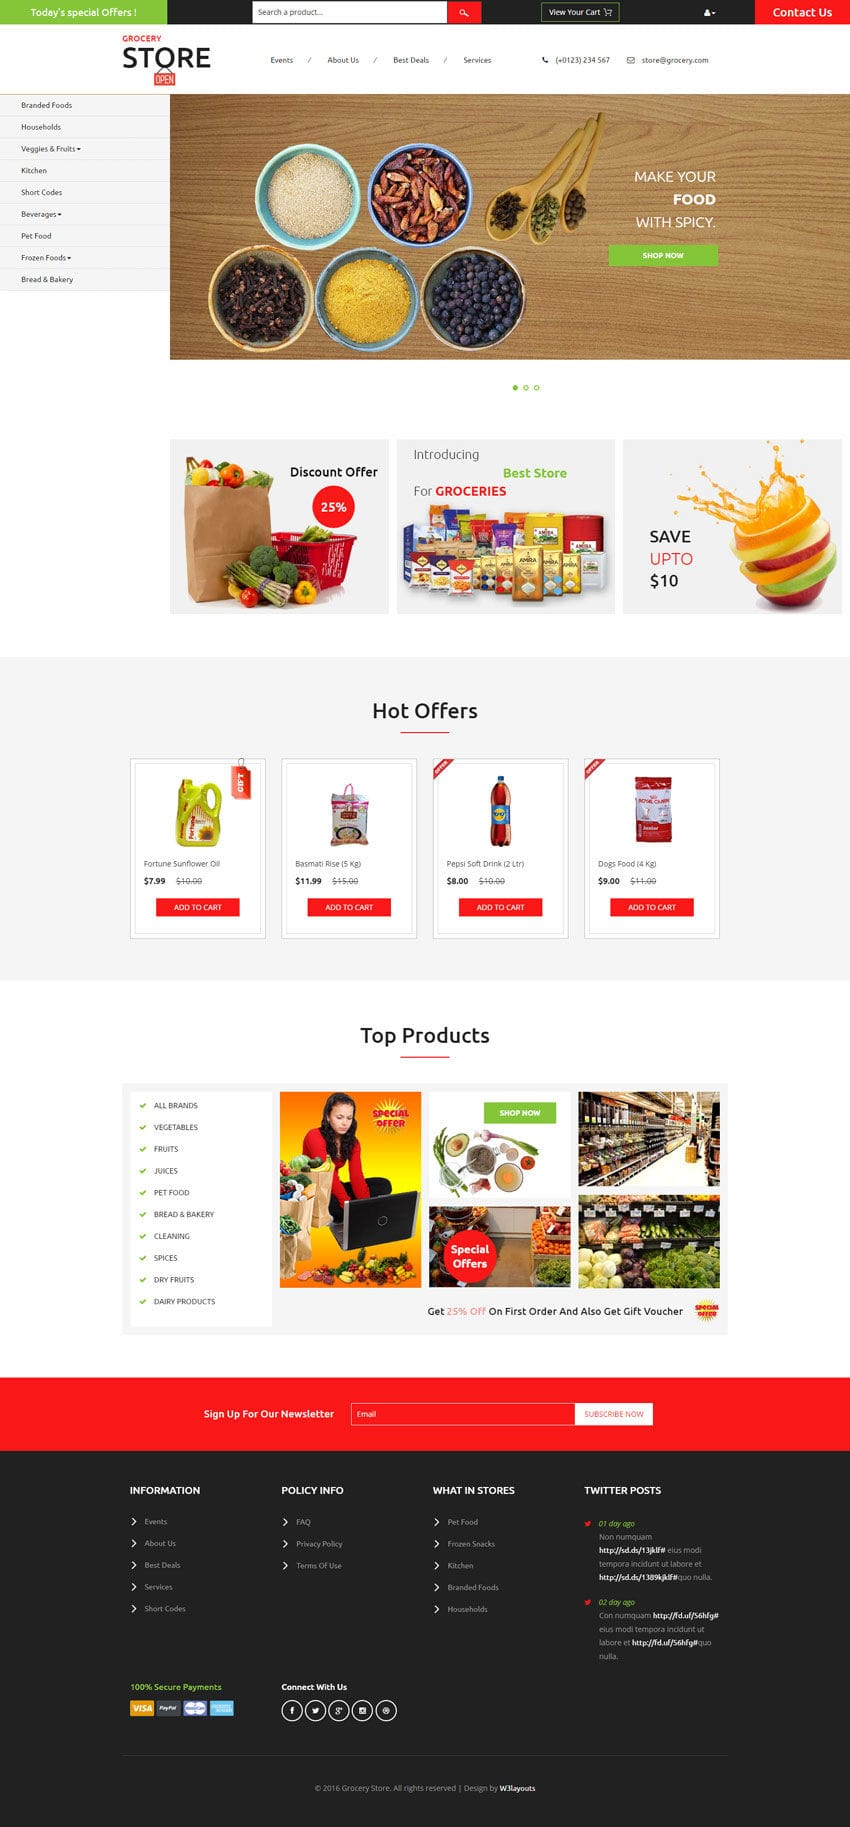 Grocery Store, a E-commerce website template for your online store.